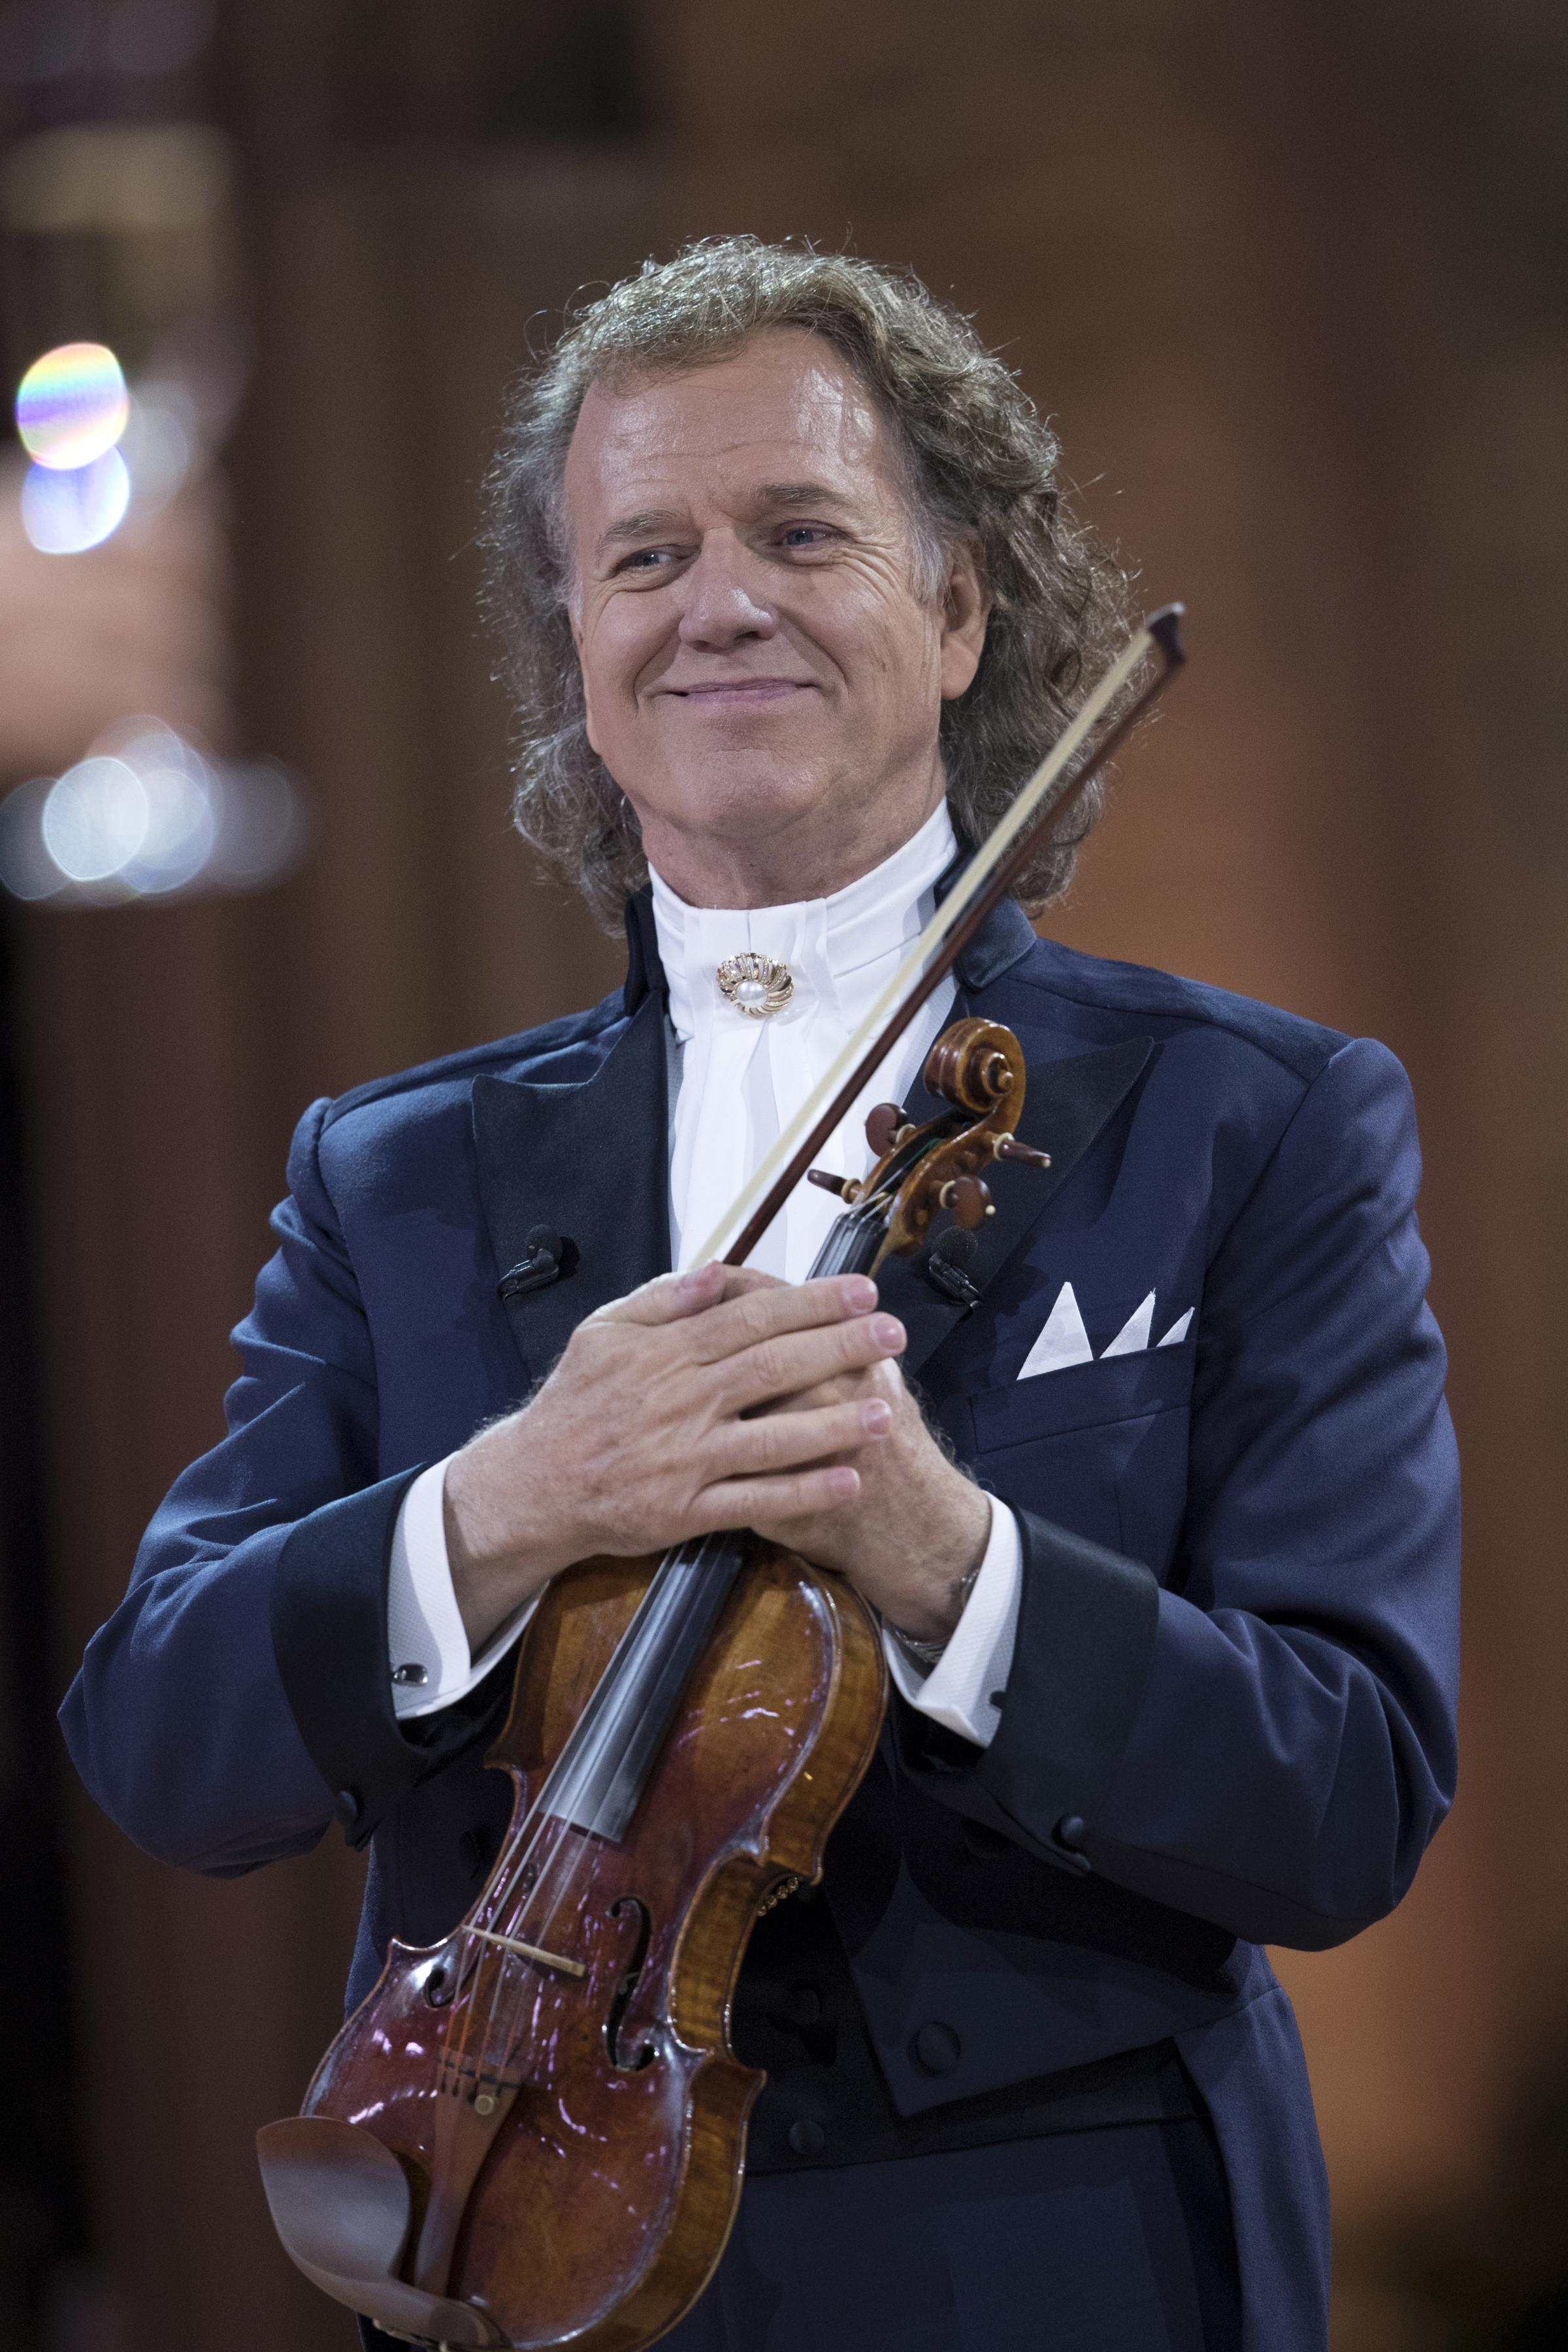 Where to see Andre Rieu's concert Shall We Dance? on the big screen in Dorset